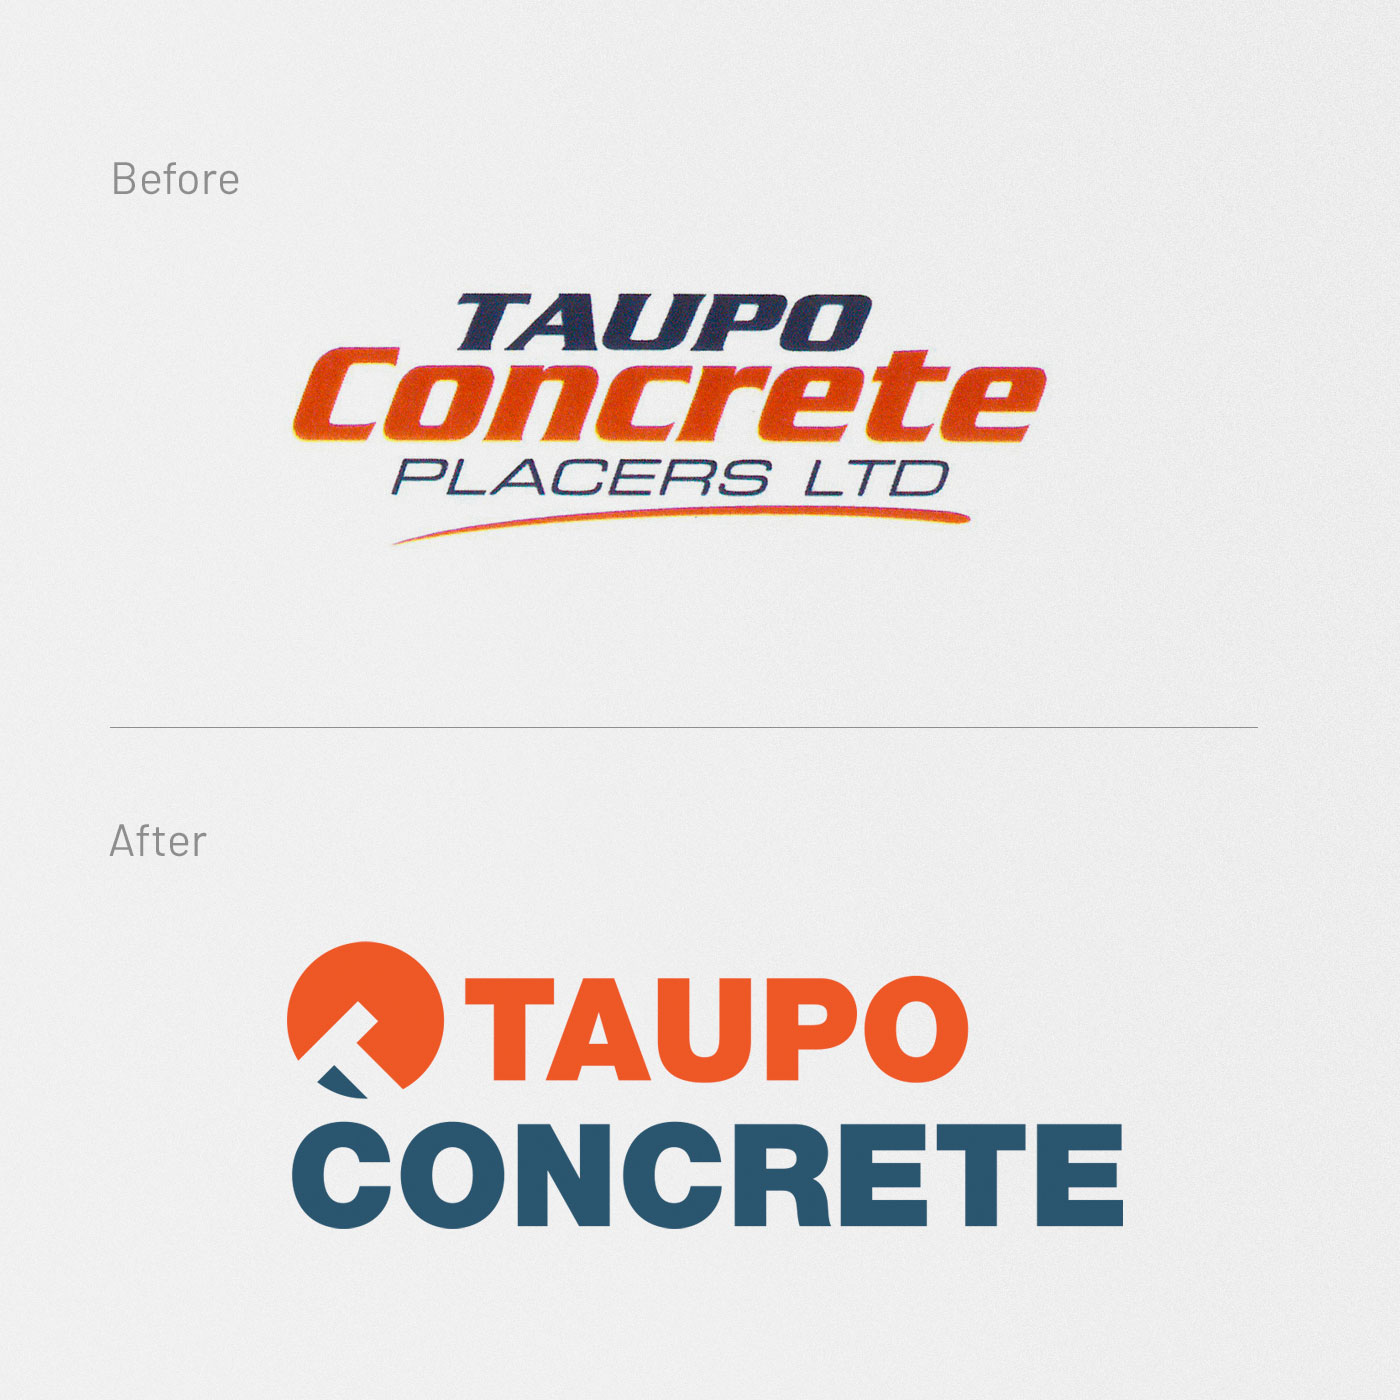 Taupo Concrete, Logo Design, Graphic Design, ninetyblack